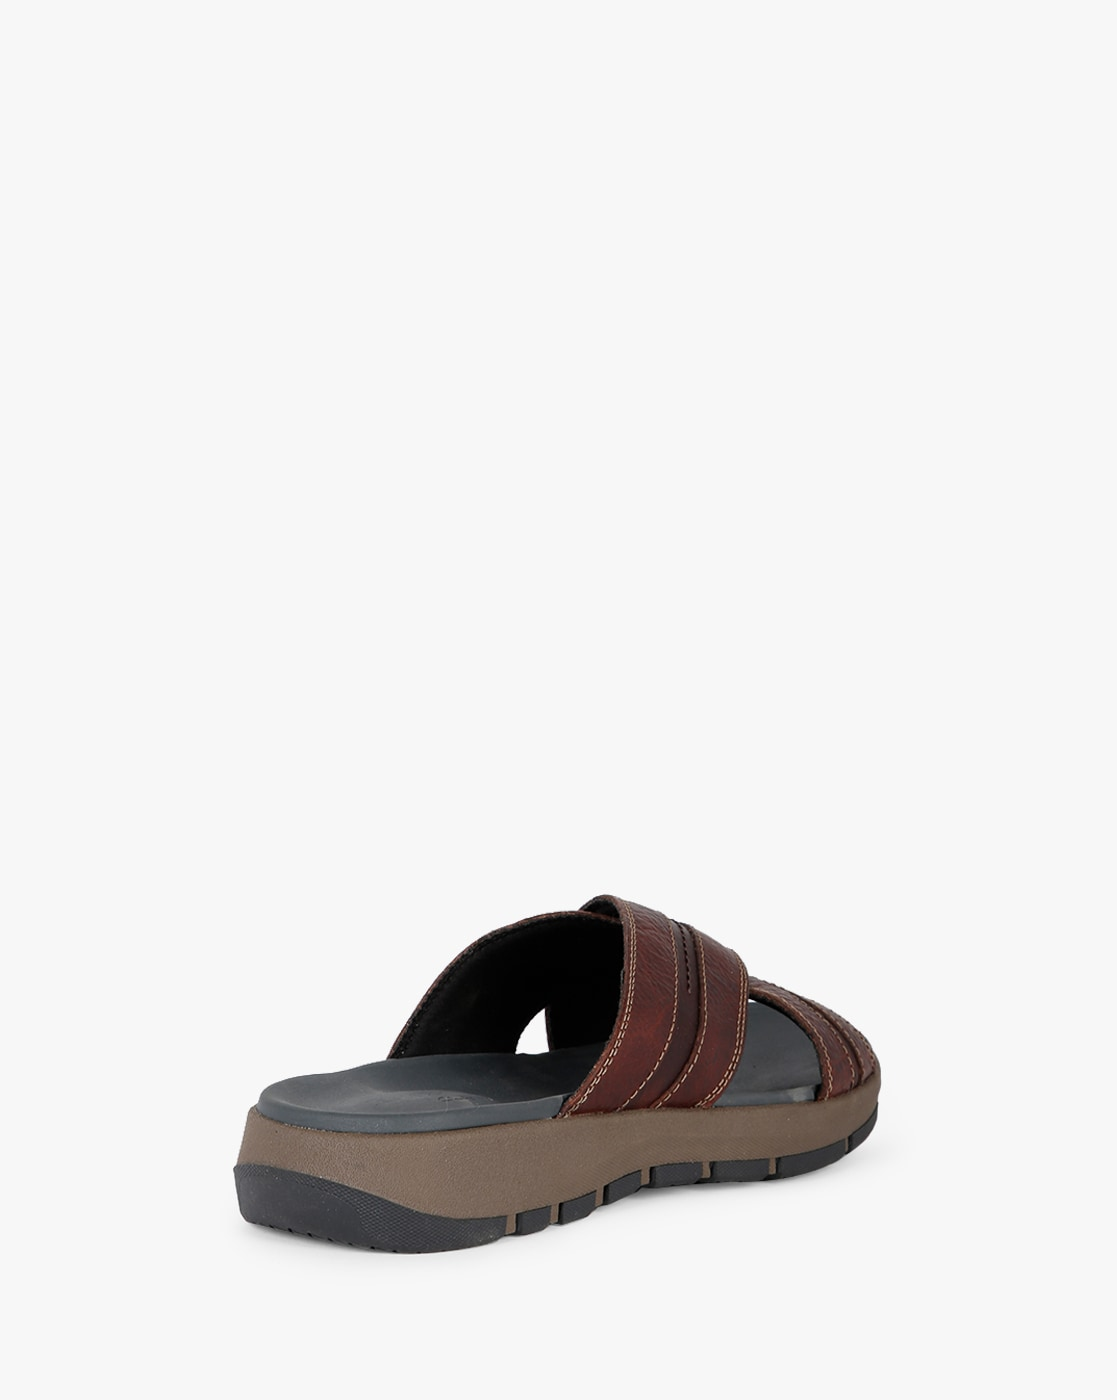 217e6cc34bc6 Buy Brown Sandals for Men by CLARKS Online